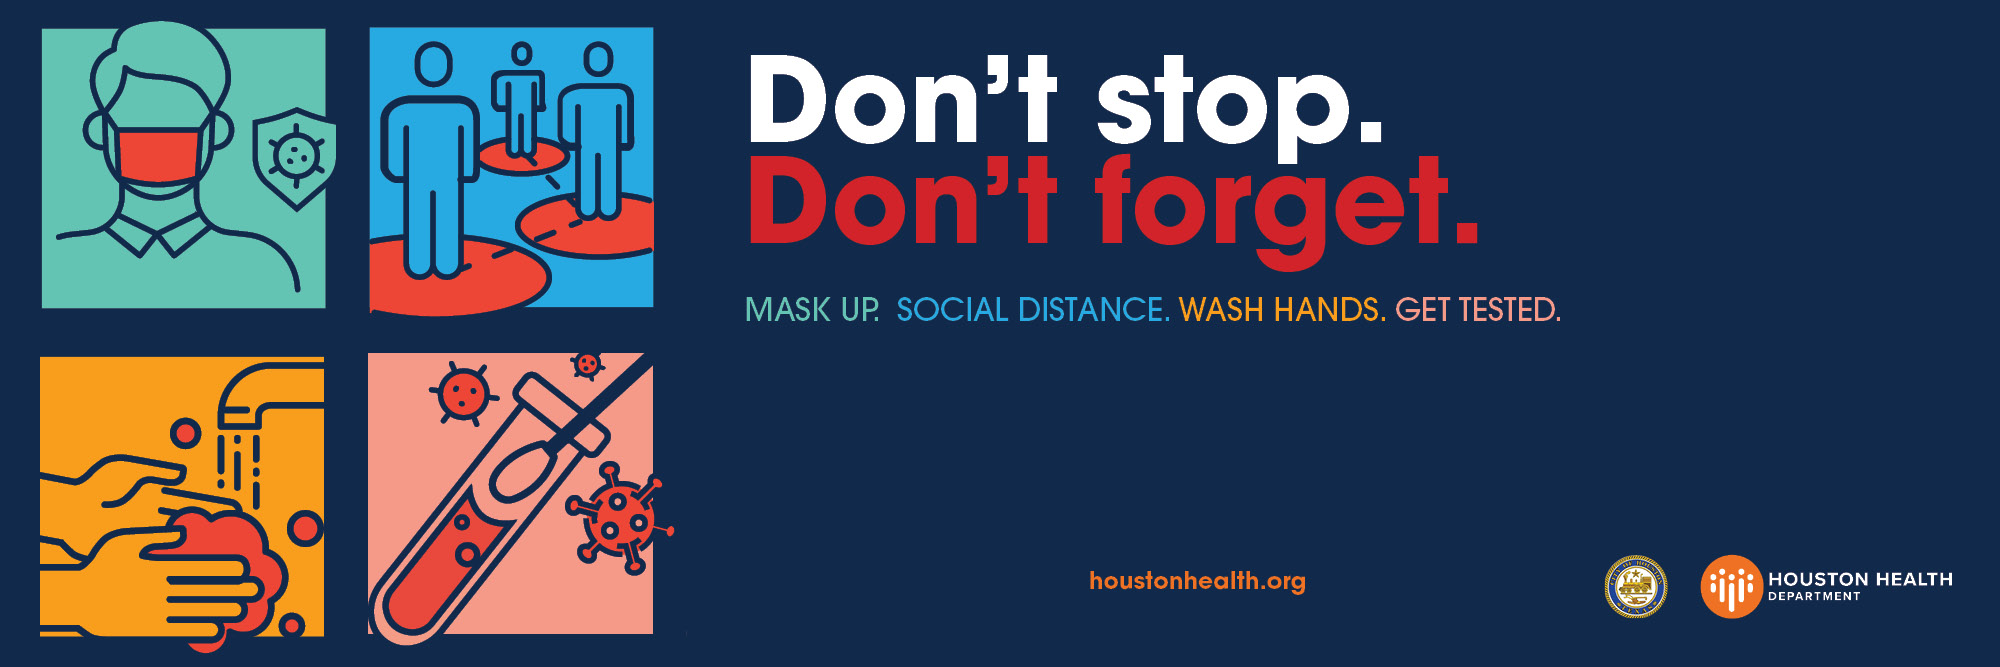 Icons for mask up, social distance, wash hands and get tested.